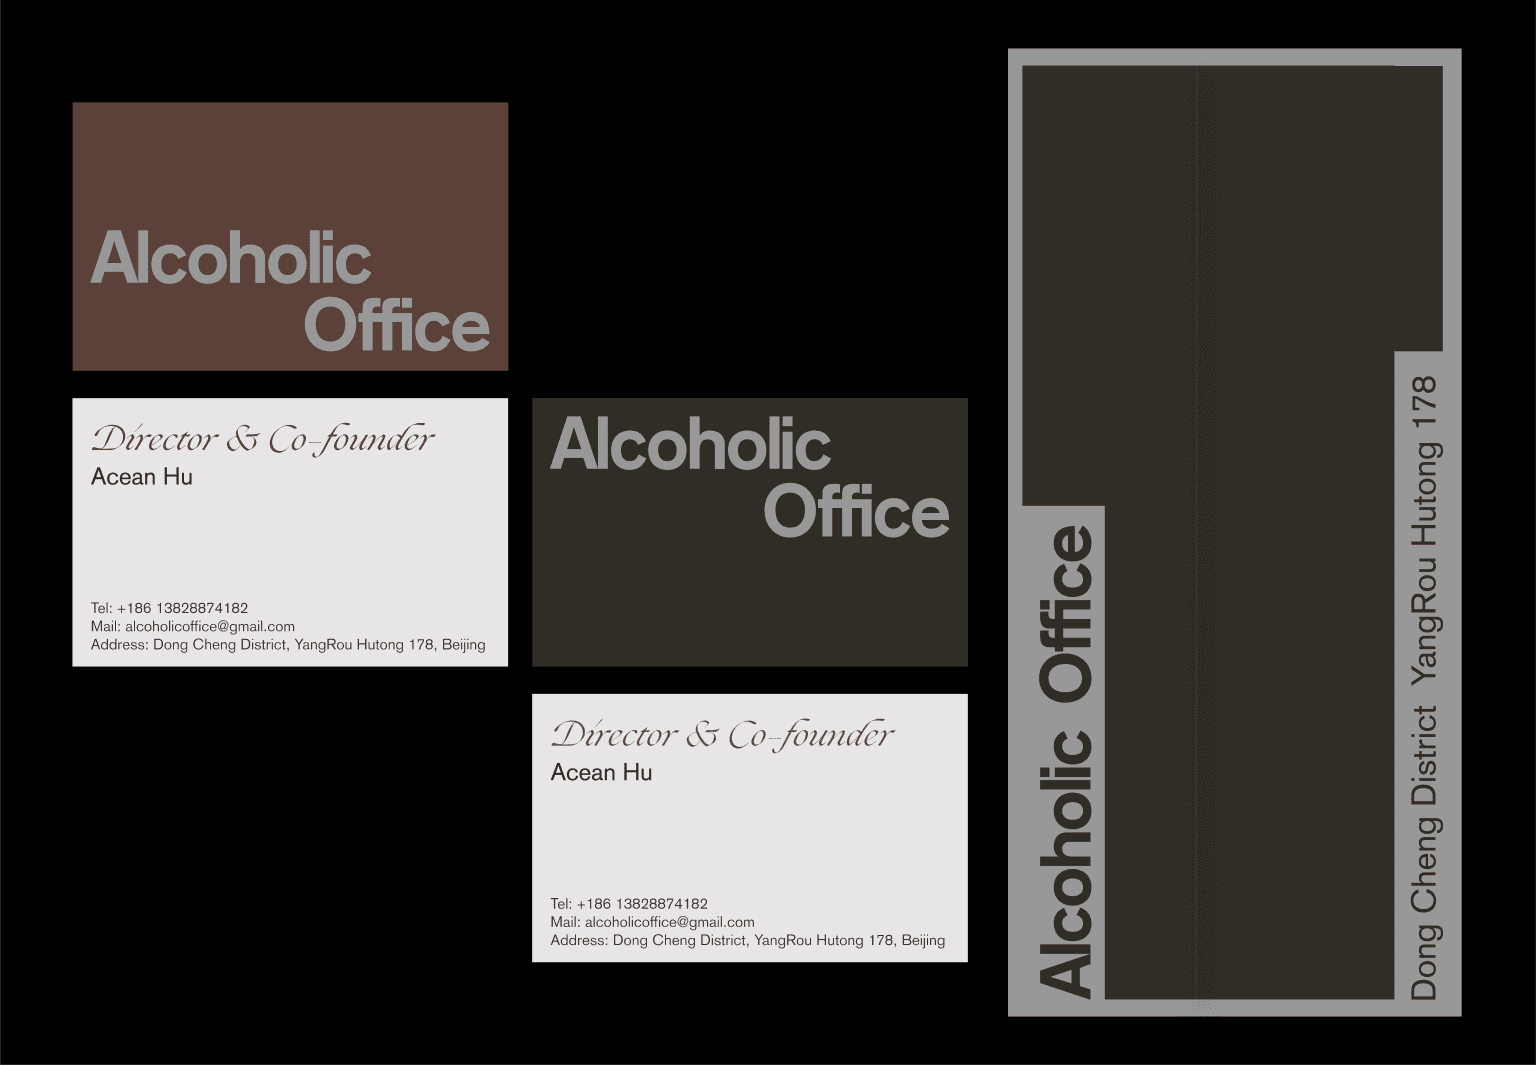 Alcoholic Office